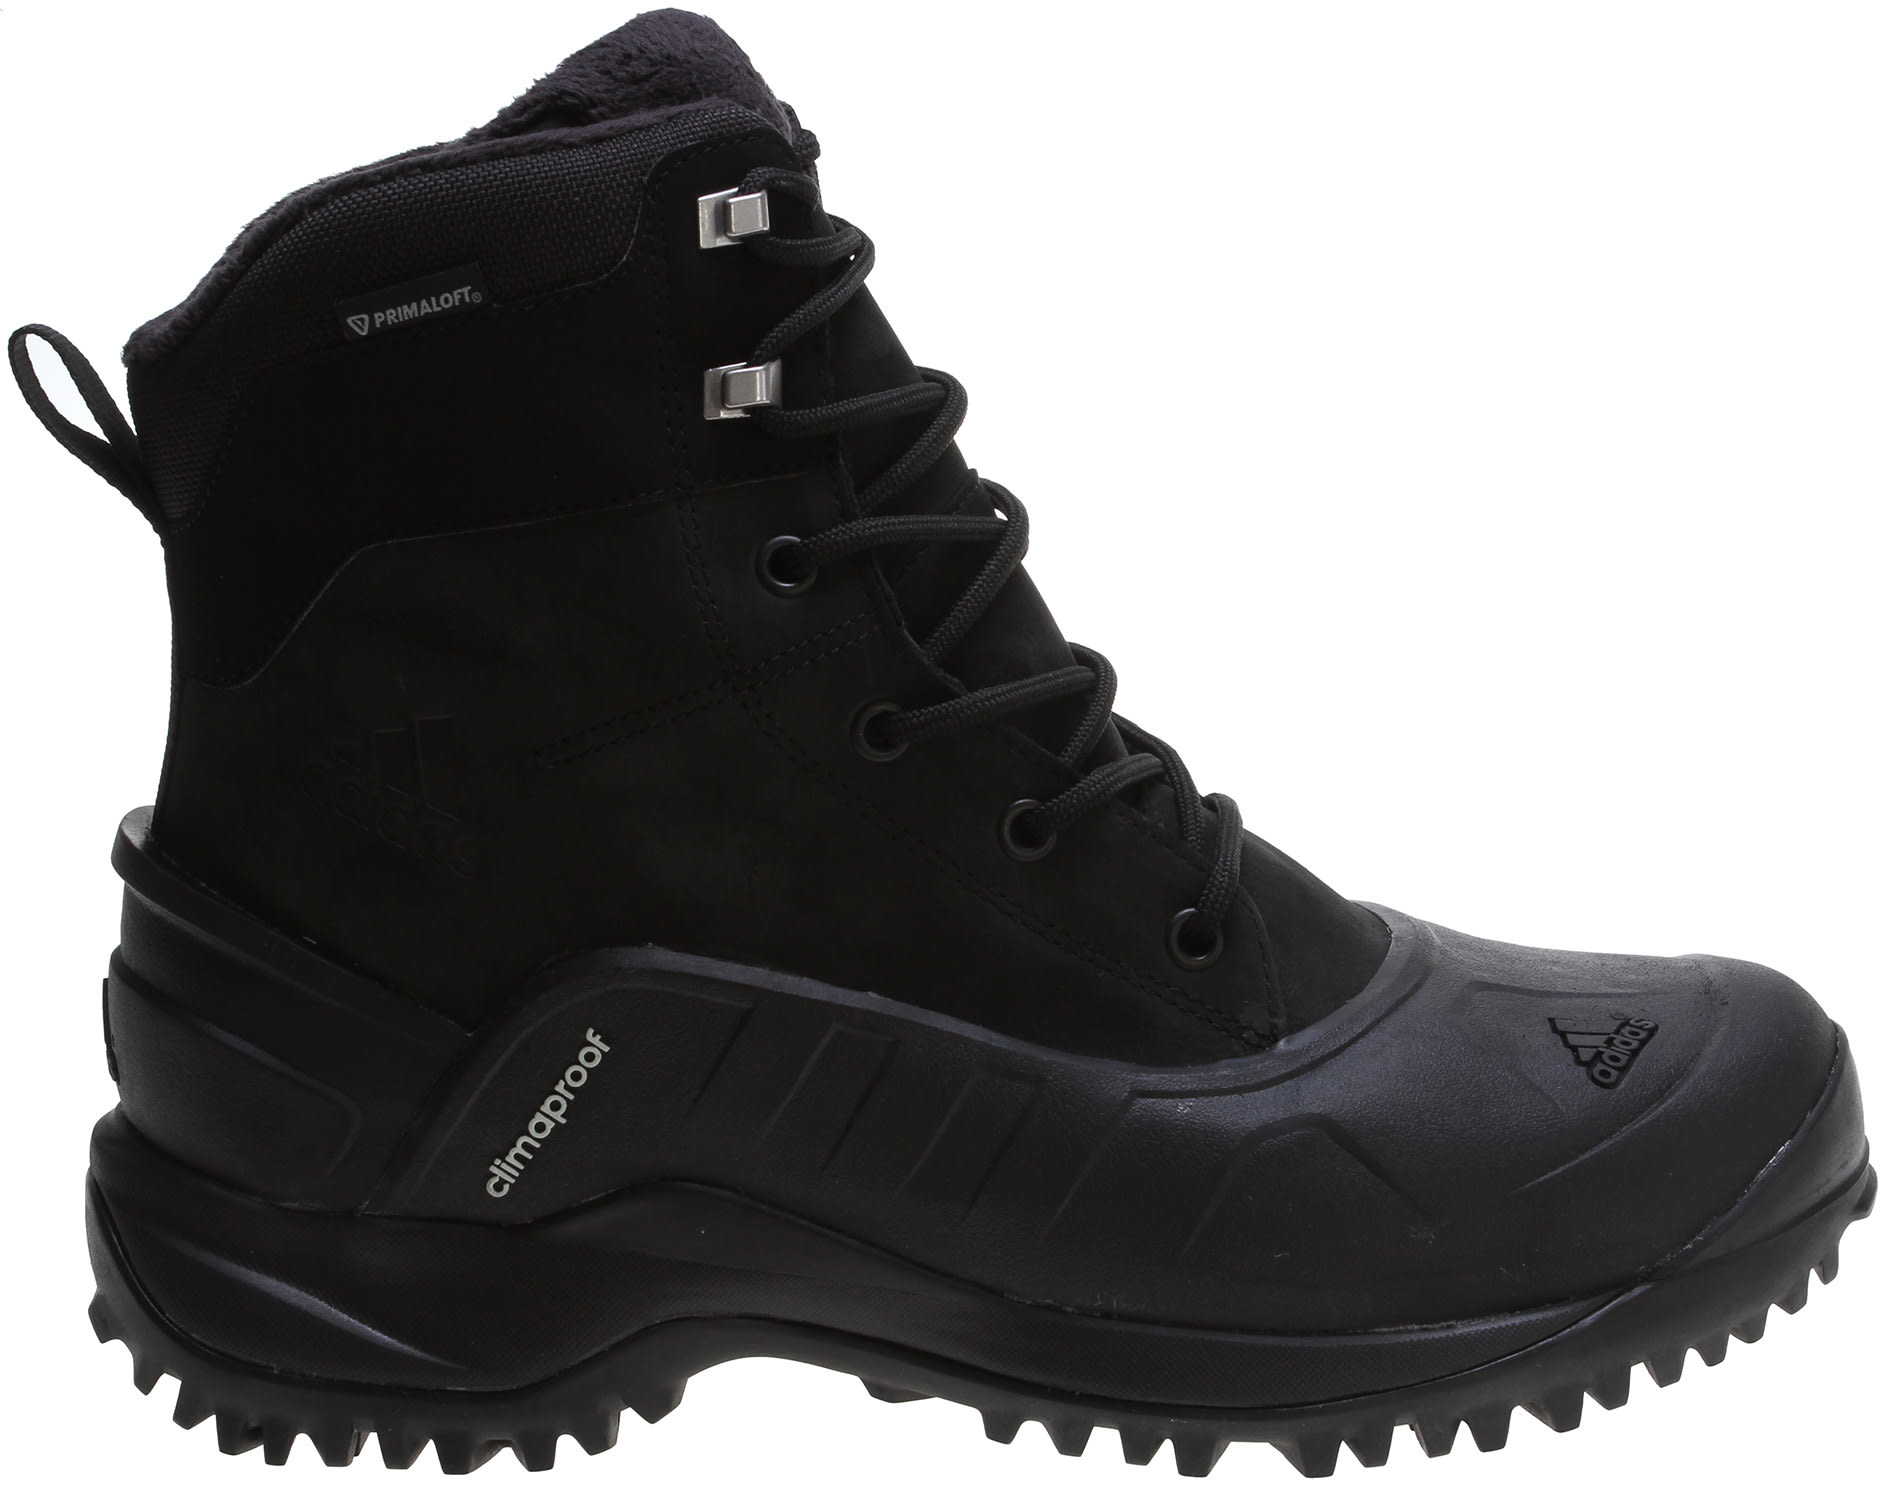 huge discount cbe3f 811b7 Adidas Holtanna II CP Primaloft Hiking Boots - thumbnail 1